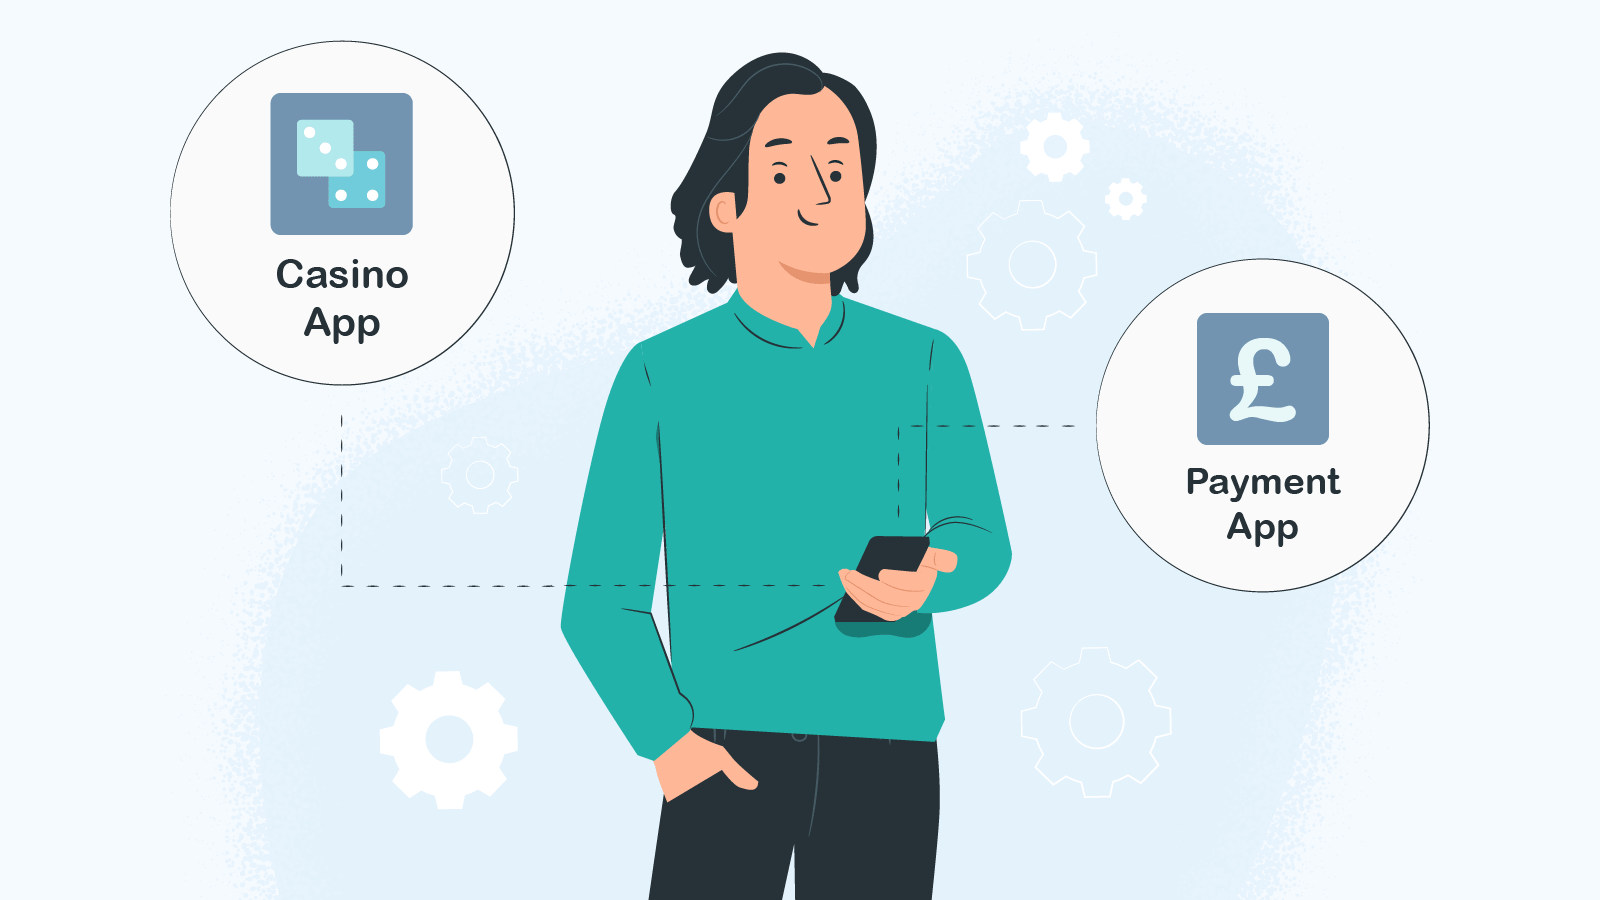 Couple your casino app with payment apps